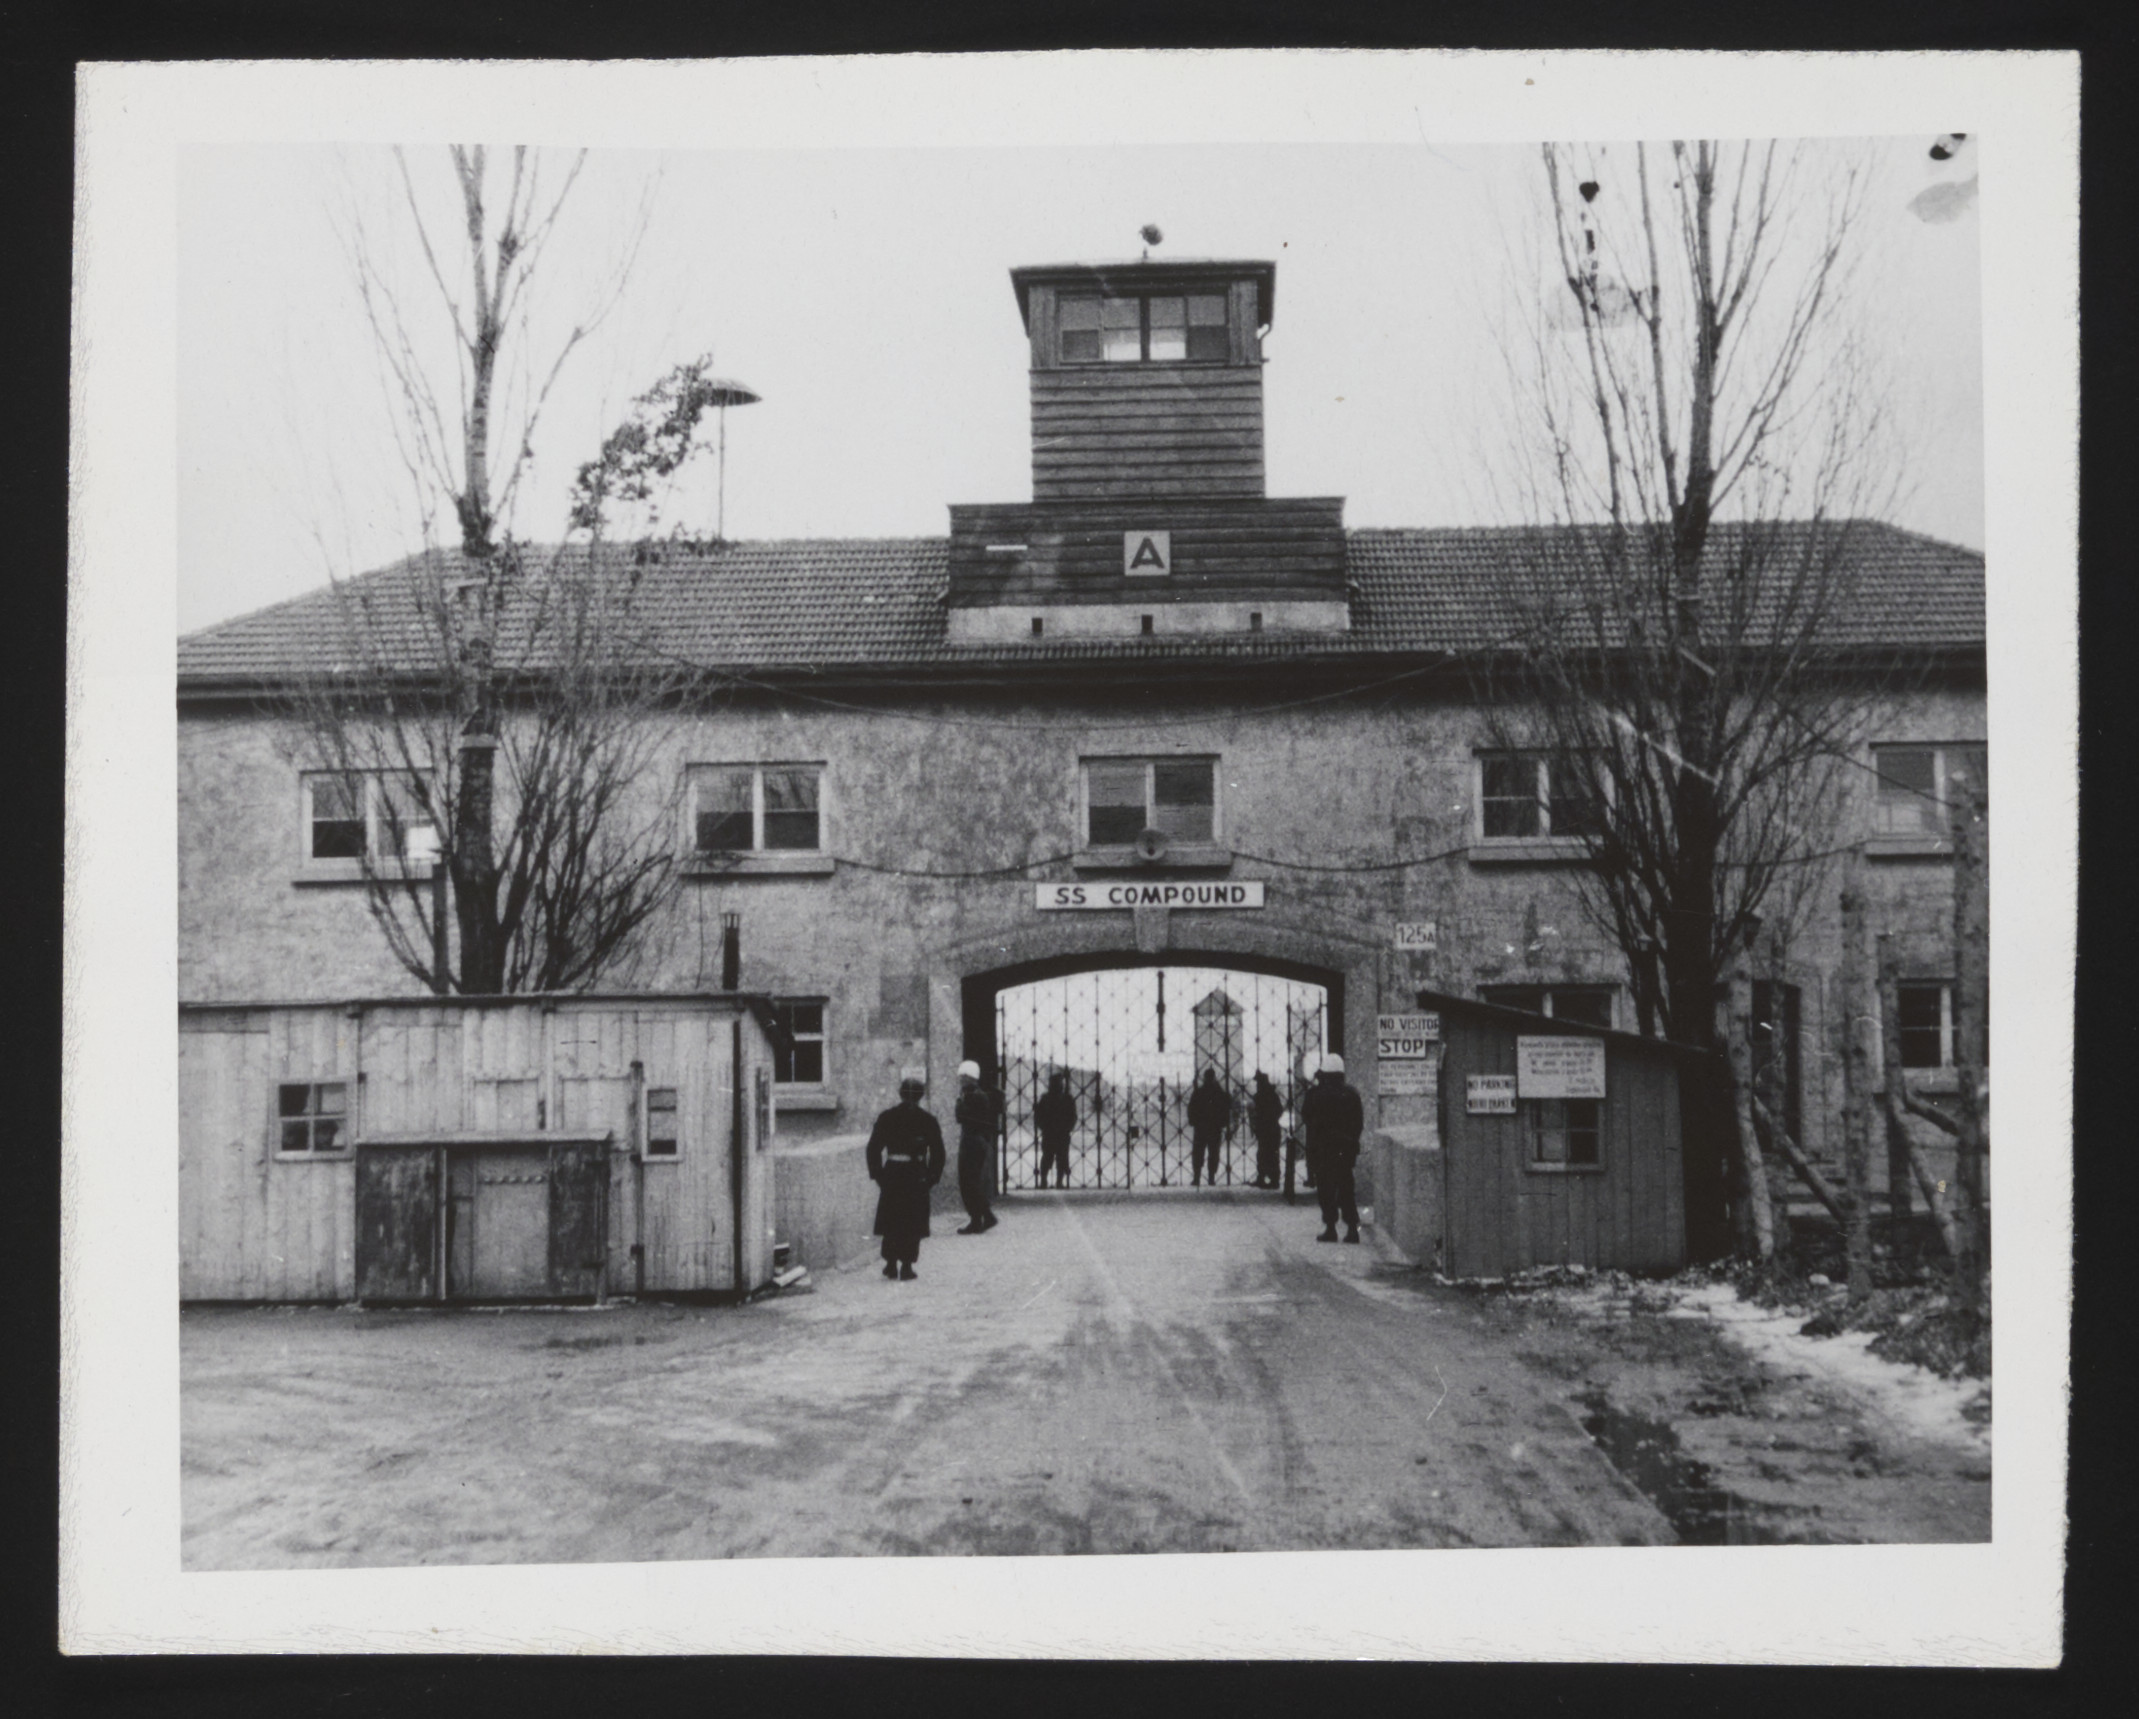 American troops guard a prison for former SS troops on the site of the Dachau concentration camp.